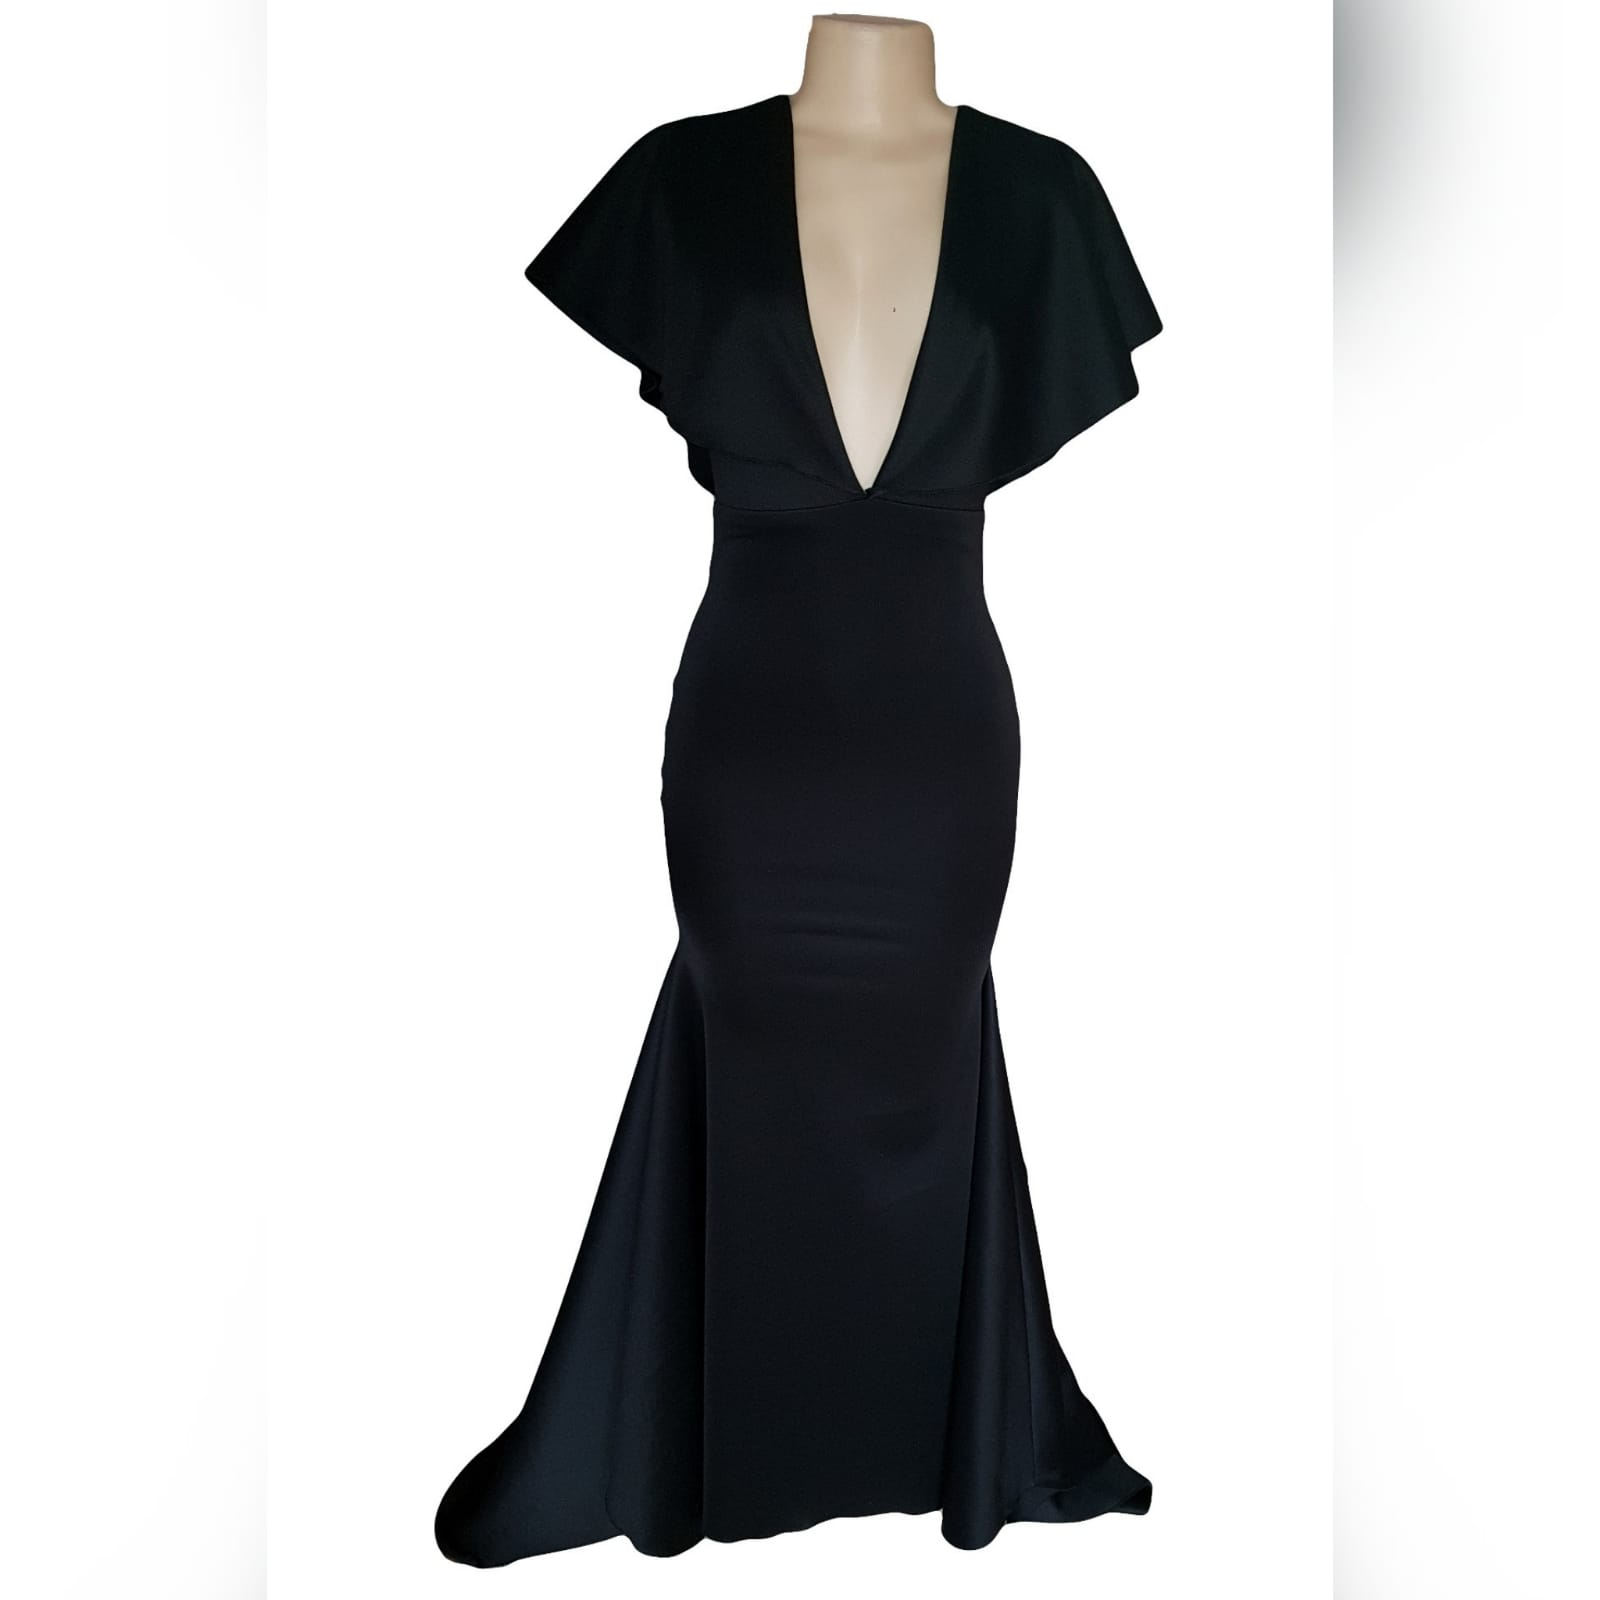 Black soft mermaid simple elegant evening dress 8 black soft mermaid simple elegant evening dress, made for prom night. With a plunging neckline, naked back, wide loose sleeves effect and a train